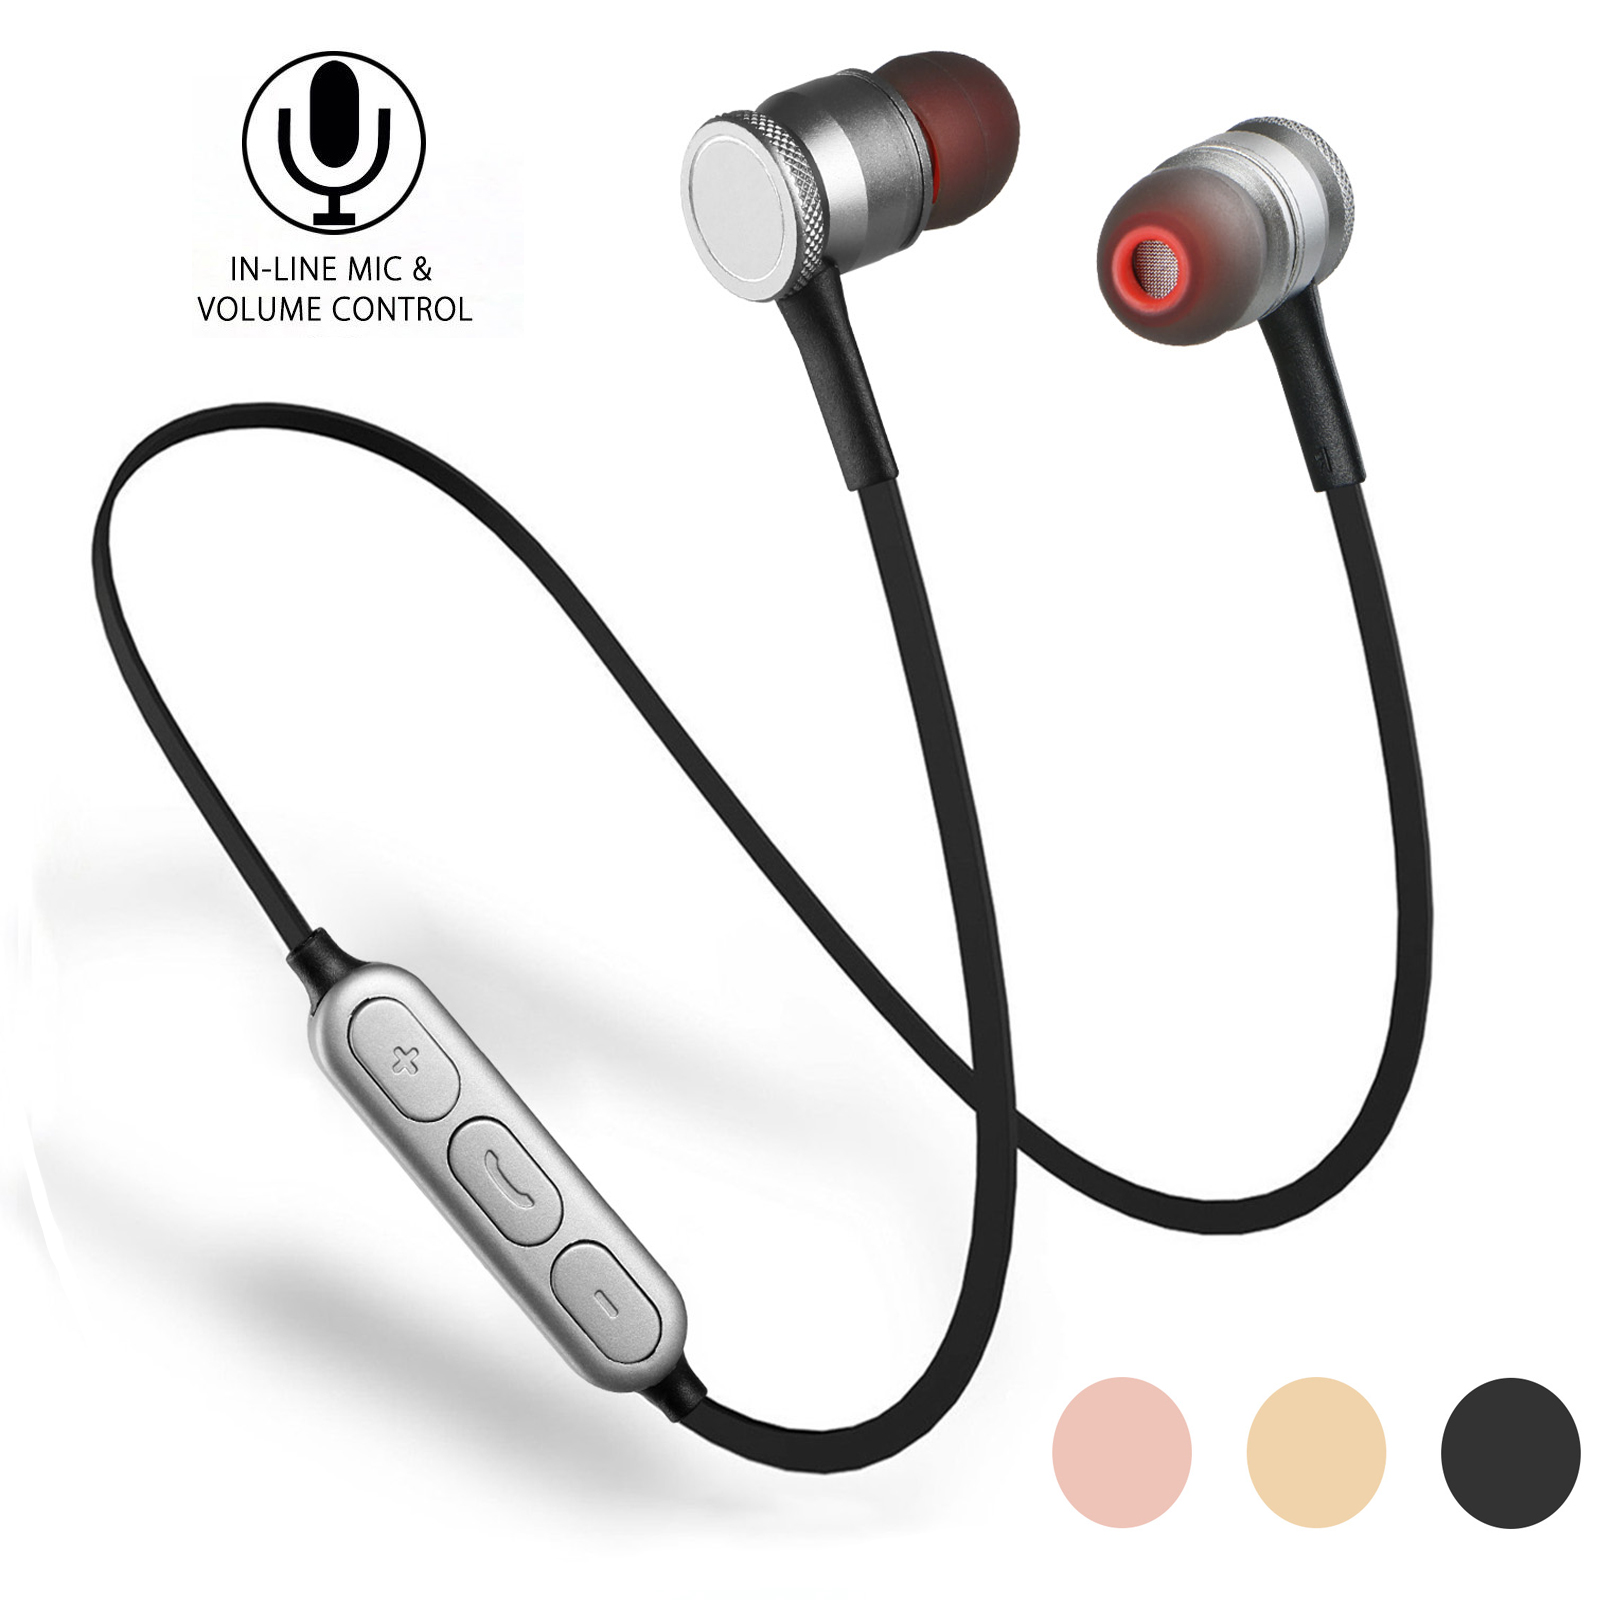 Wireless Earphones, EEEKit Universal Magnetic Wireless Bluetooth V4.0 Earbuds Sports In-Ear Stereo Headphones with Built-In Microphone for Smartphone, Tablets, PC